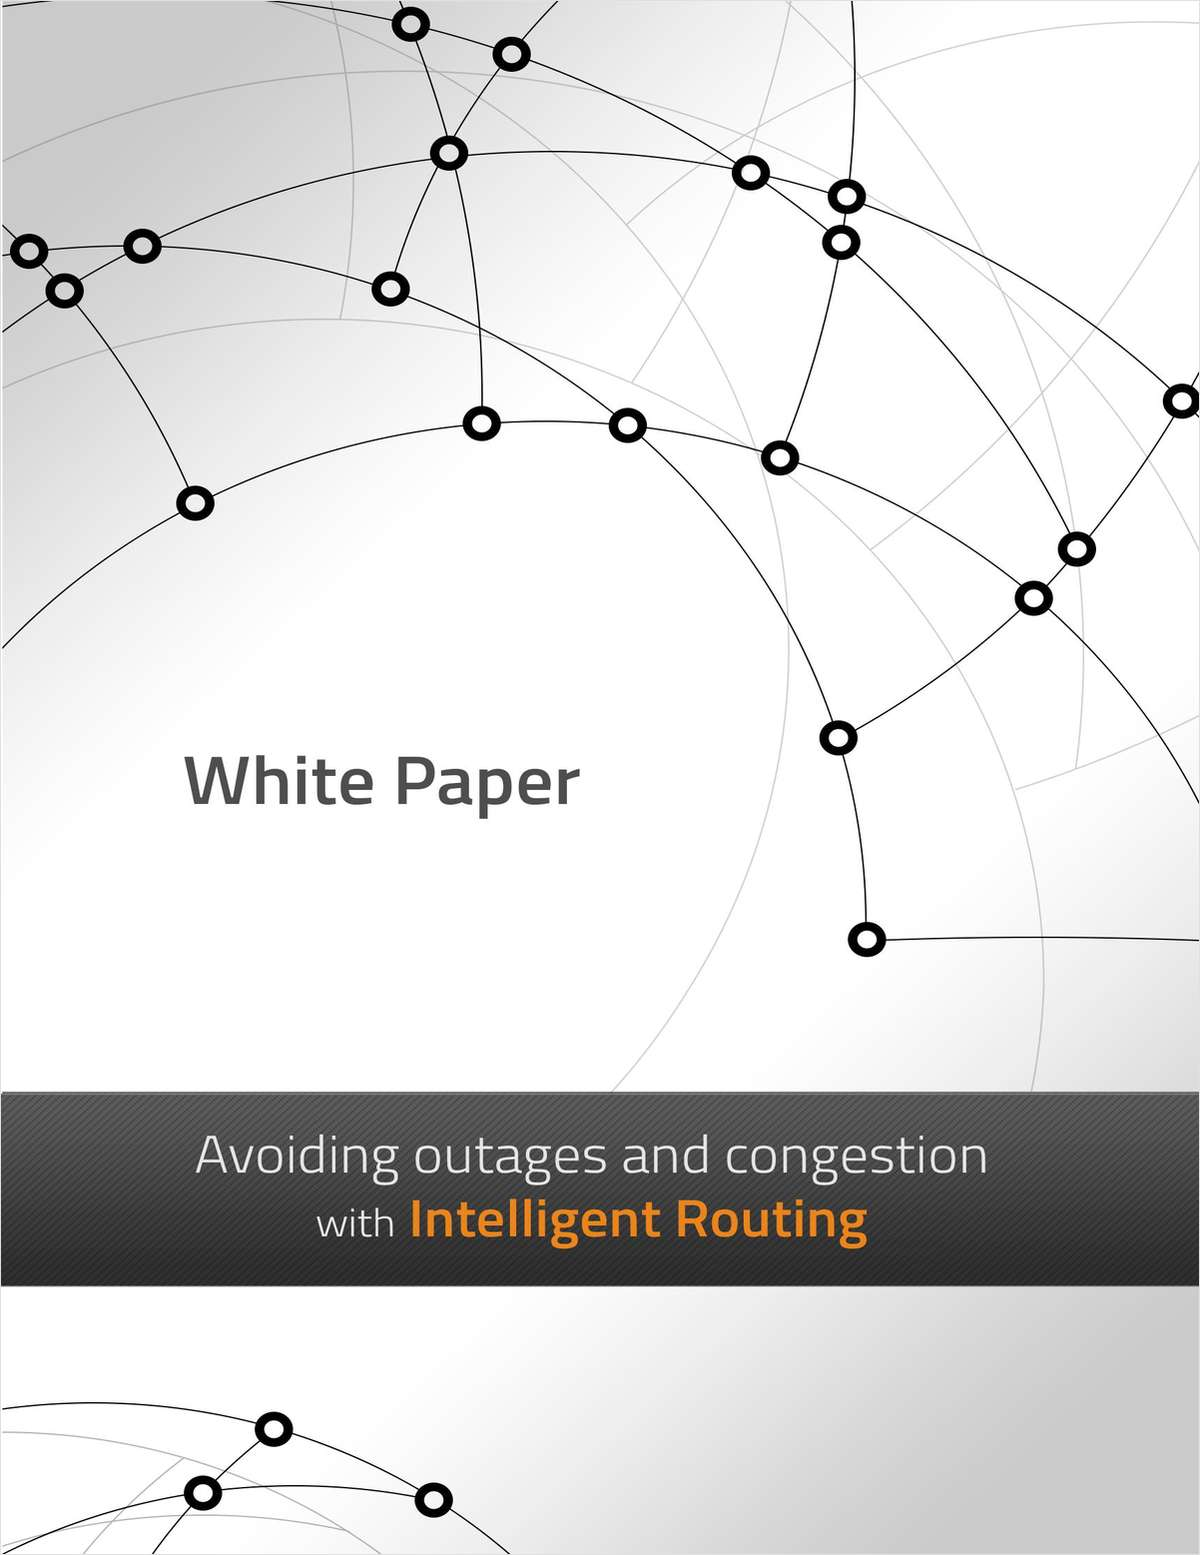 Avoiding Outages and Congestion with Intelligent Routing